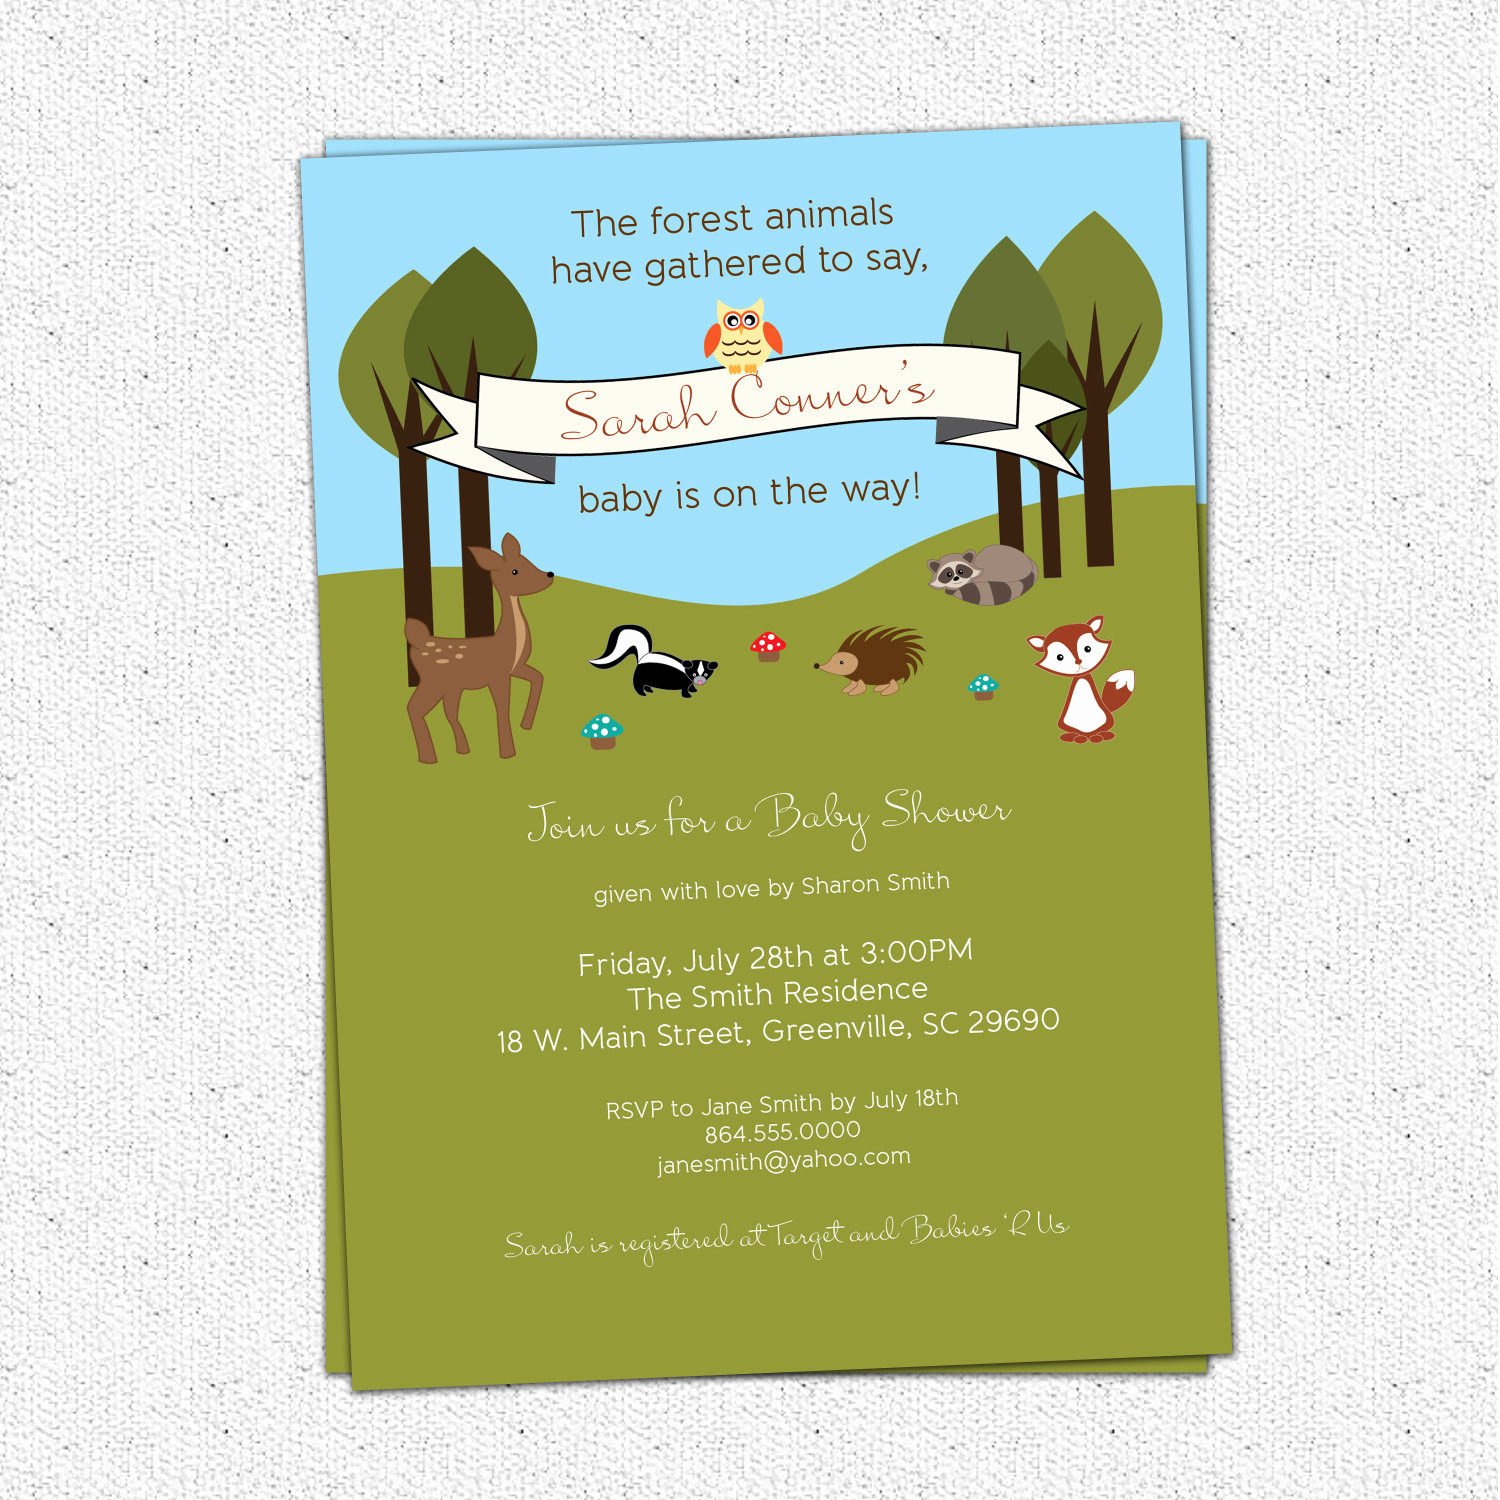 Woodland Baby Shower Invitation Elegant Printable Baby Shower Invitation Woodland Animals Creatures